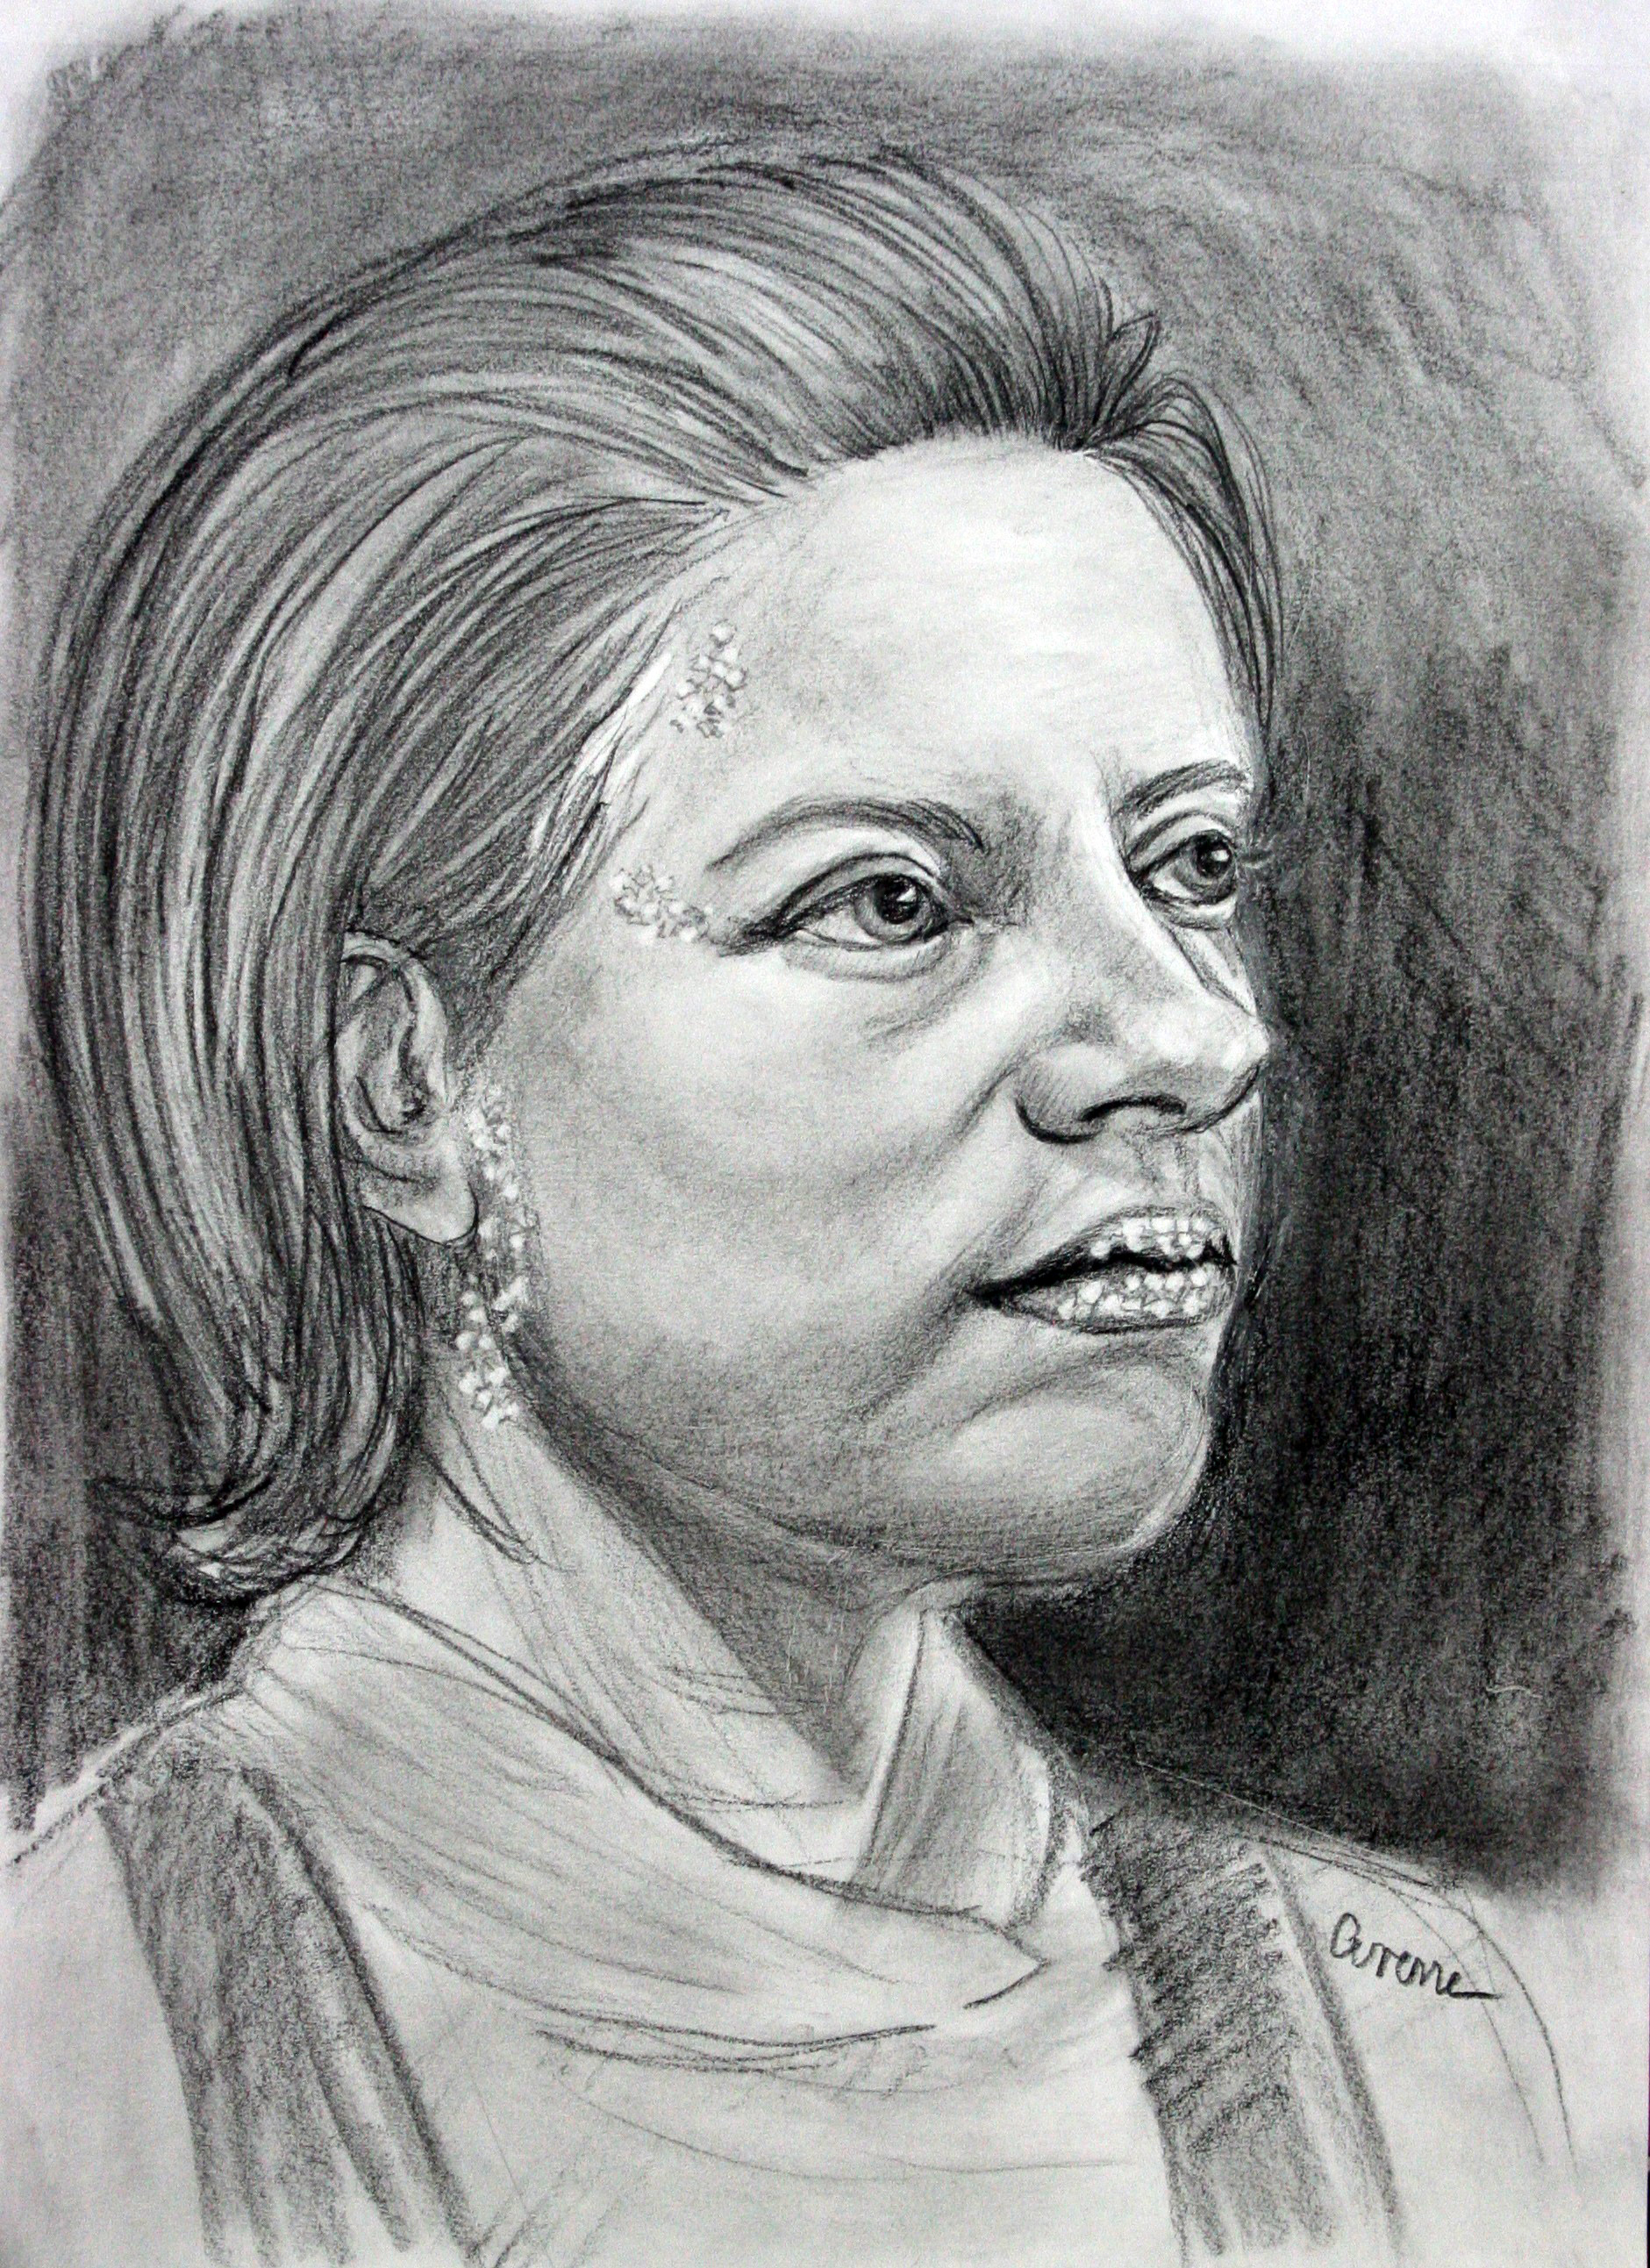 Susan Averre did this drawing.